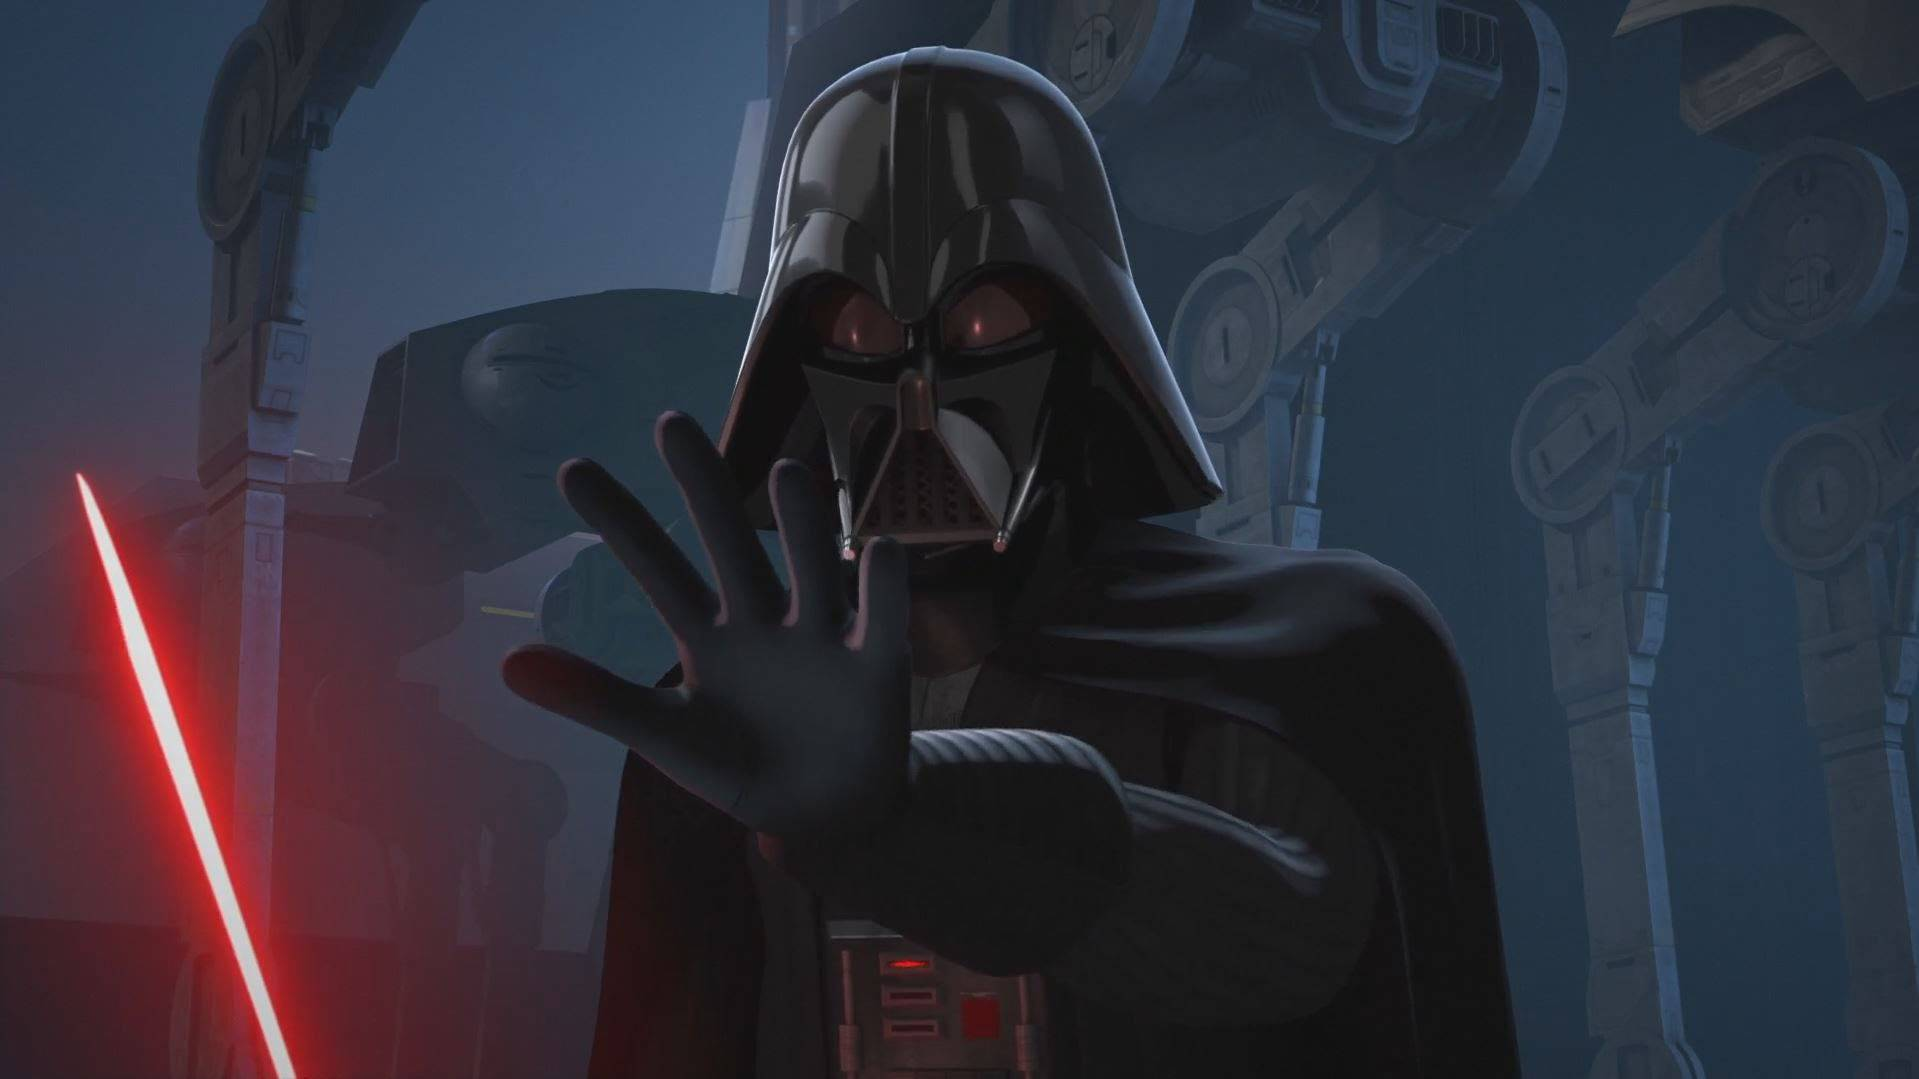 star-wars-rebels-darth-vader